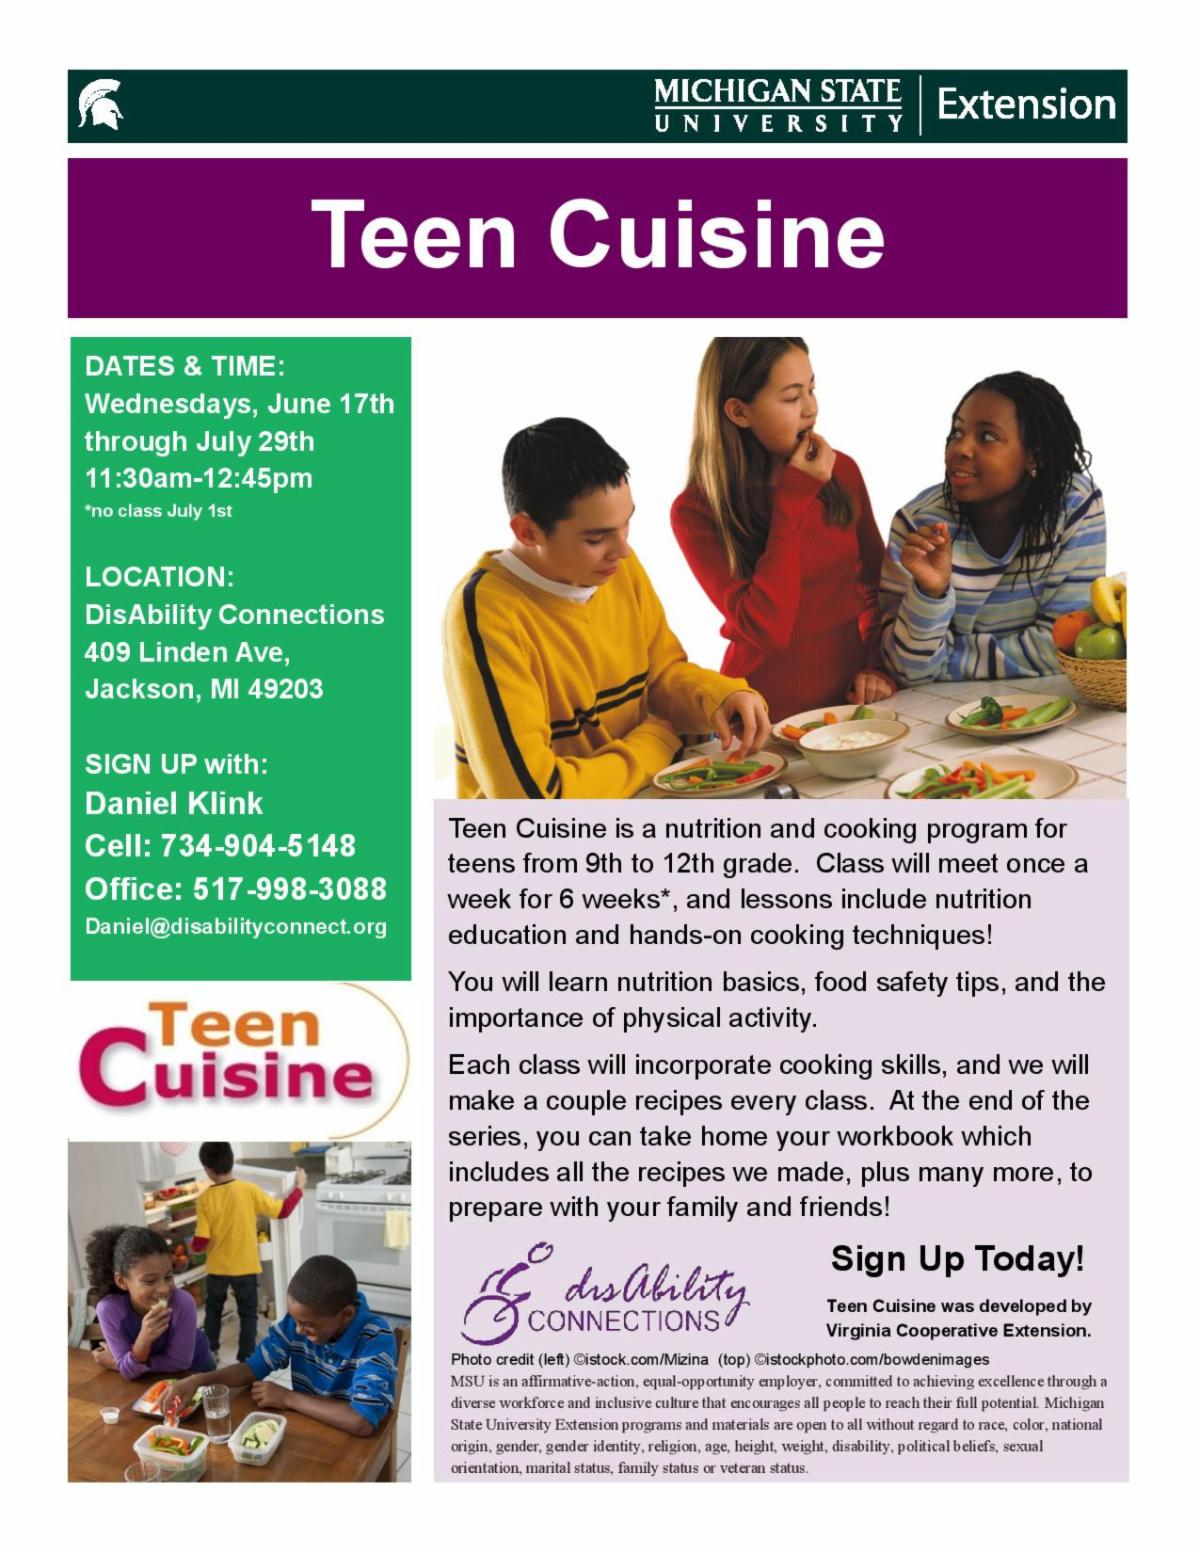 Teen Cuisine is an upcoming program beginning June 17th until July 29th for teens to get some additional information and guided lessons revolving around the kitchen in a partnership between MSU Extension and disAbility Connections.